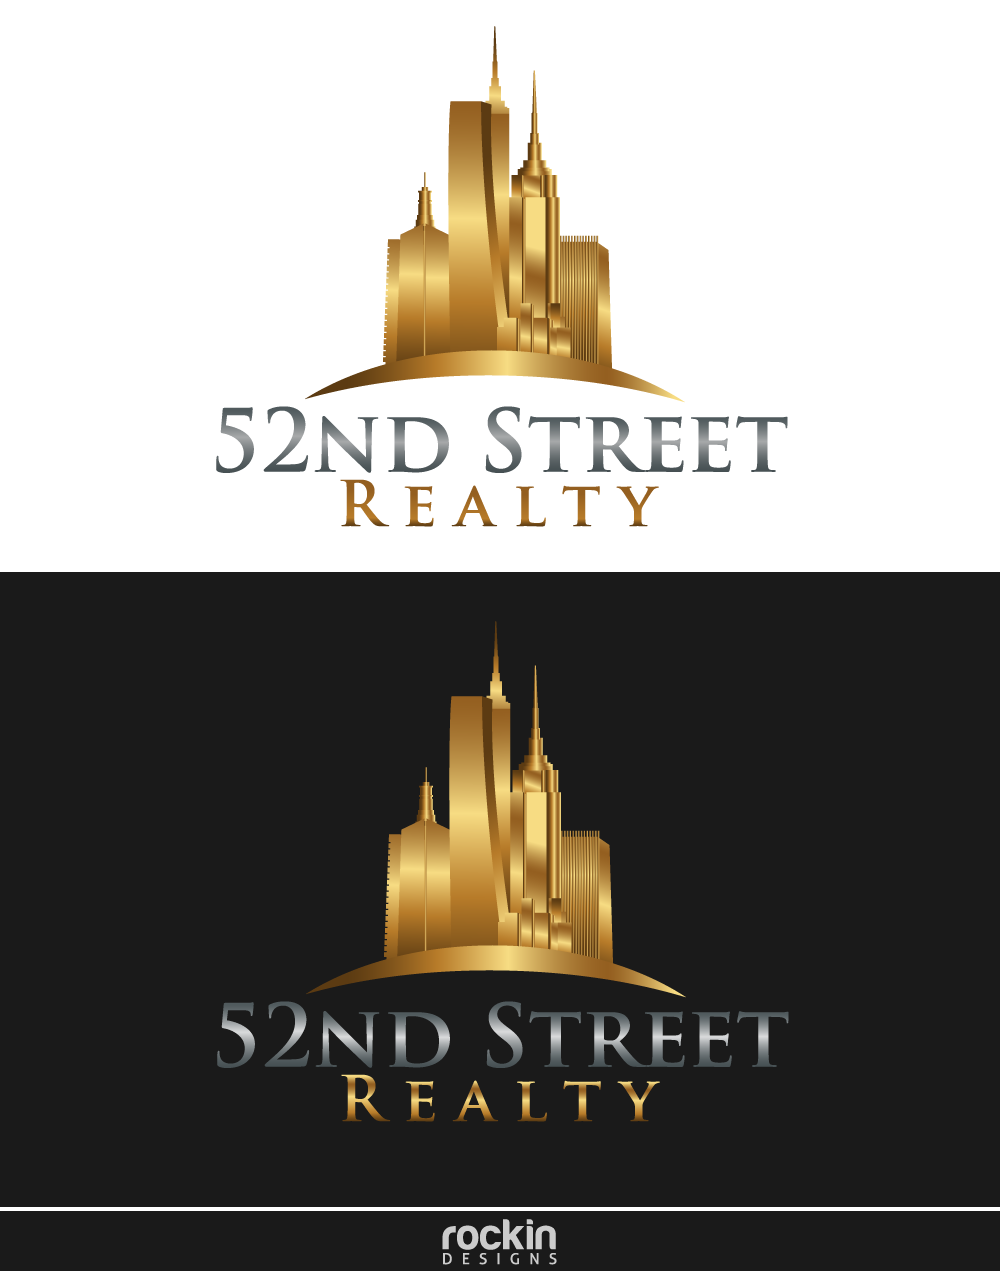 Logo Design by rockin - Entry No. 26 in the Logo Design Contest 52nd Street Realty Logo Design.